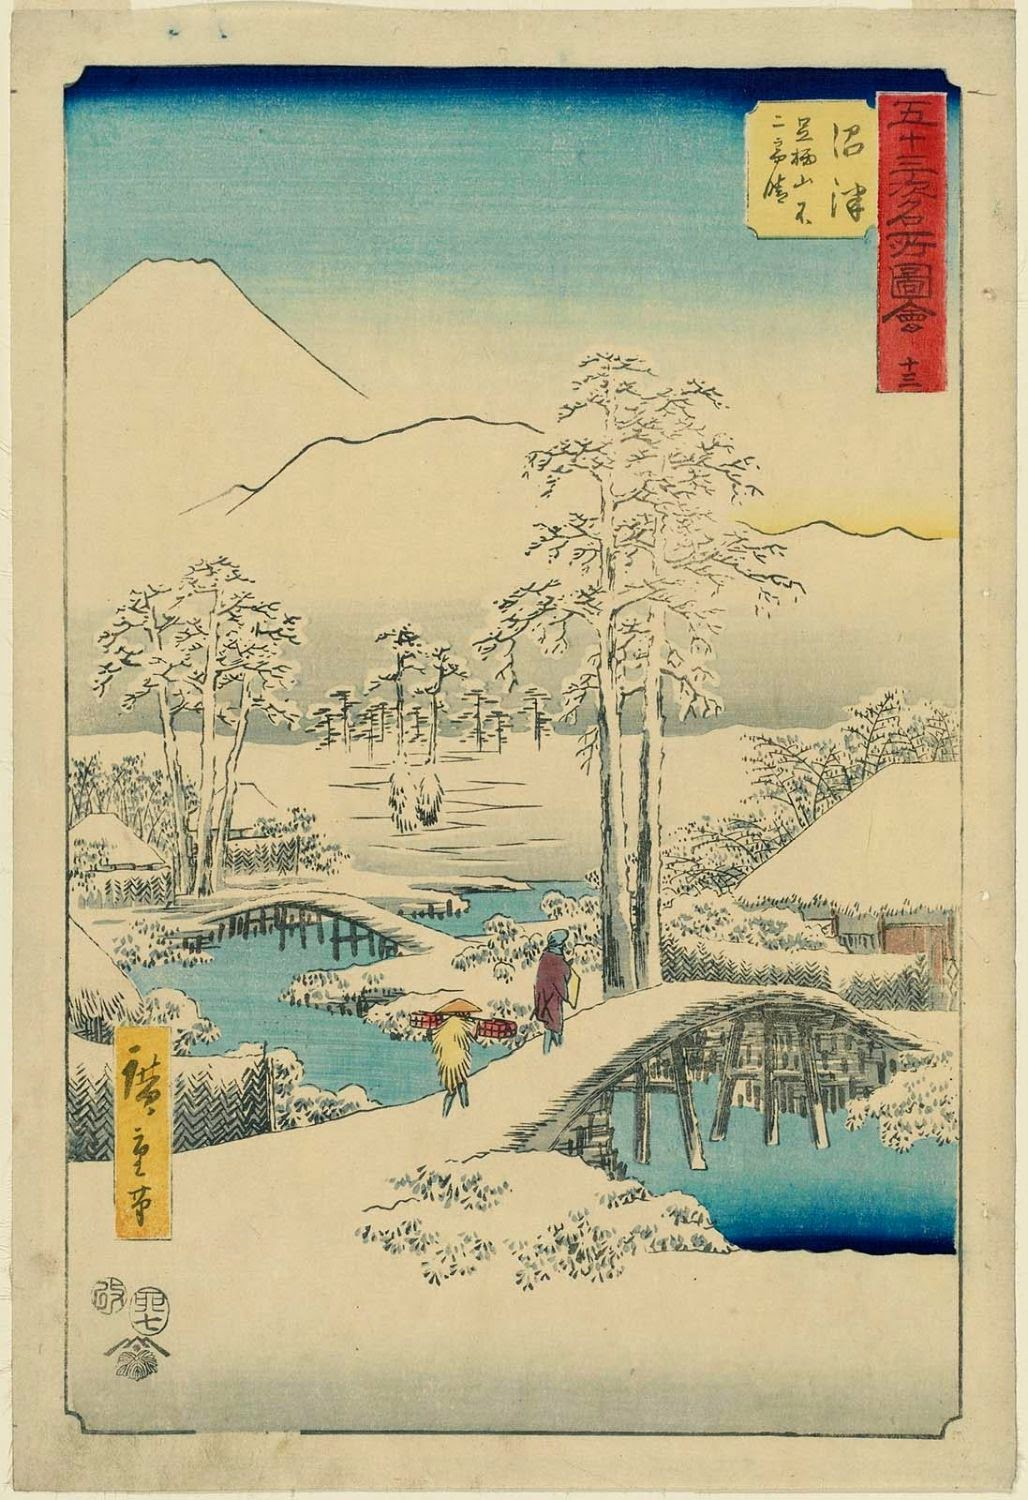 Utagawa Hiroshige, Numazu: Fuji in Clear Weather after Snow, from the Ashigara Mountains